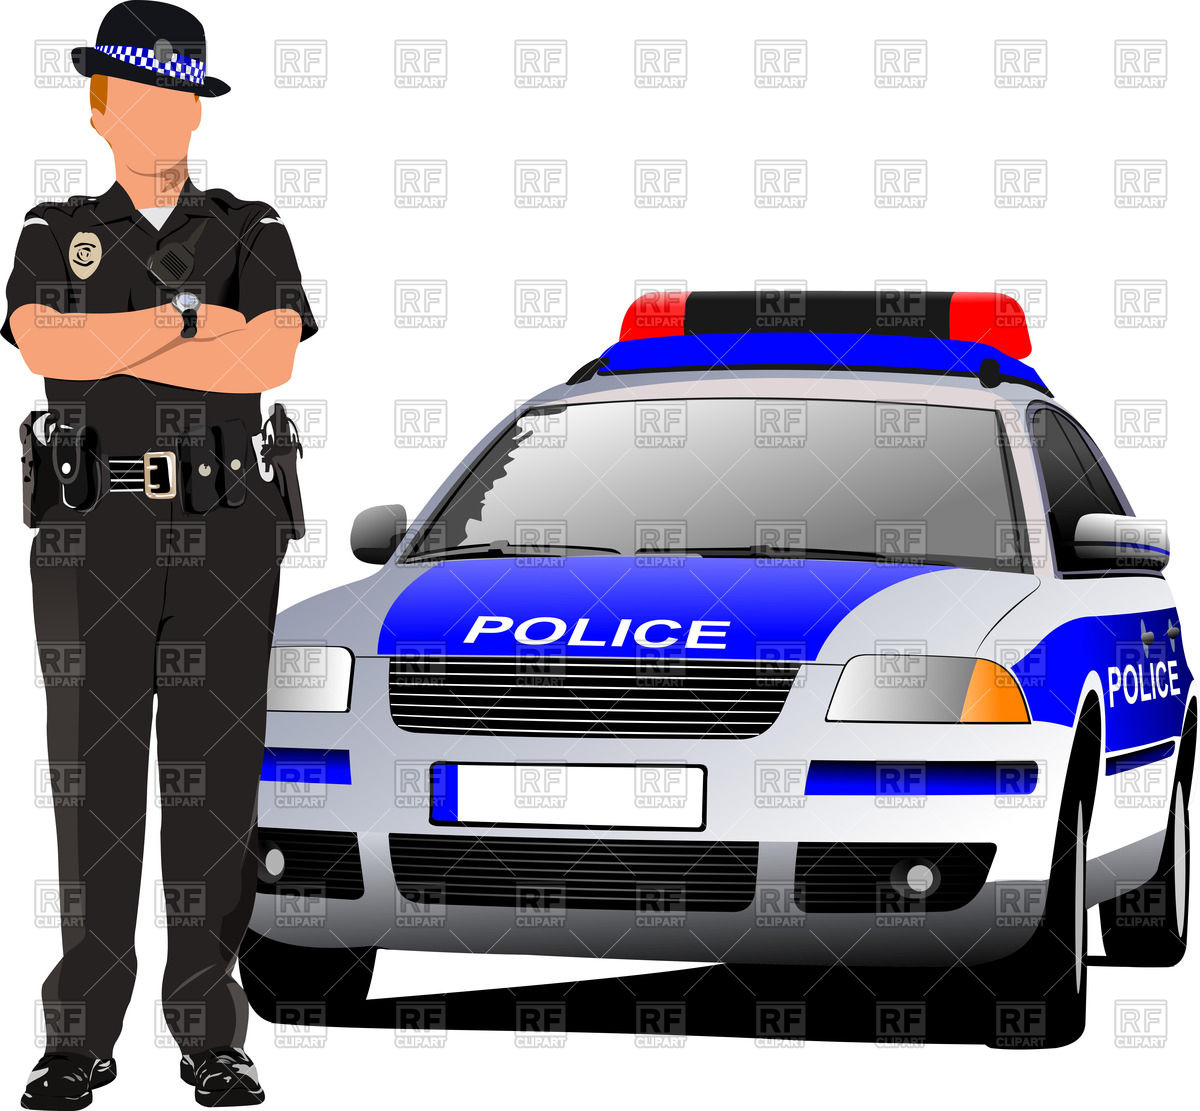 Police officer car clipart clip black and white library Policeman in form and police car - front view Vector Image #56832 ... clip black and white library